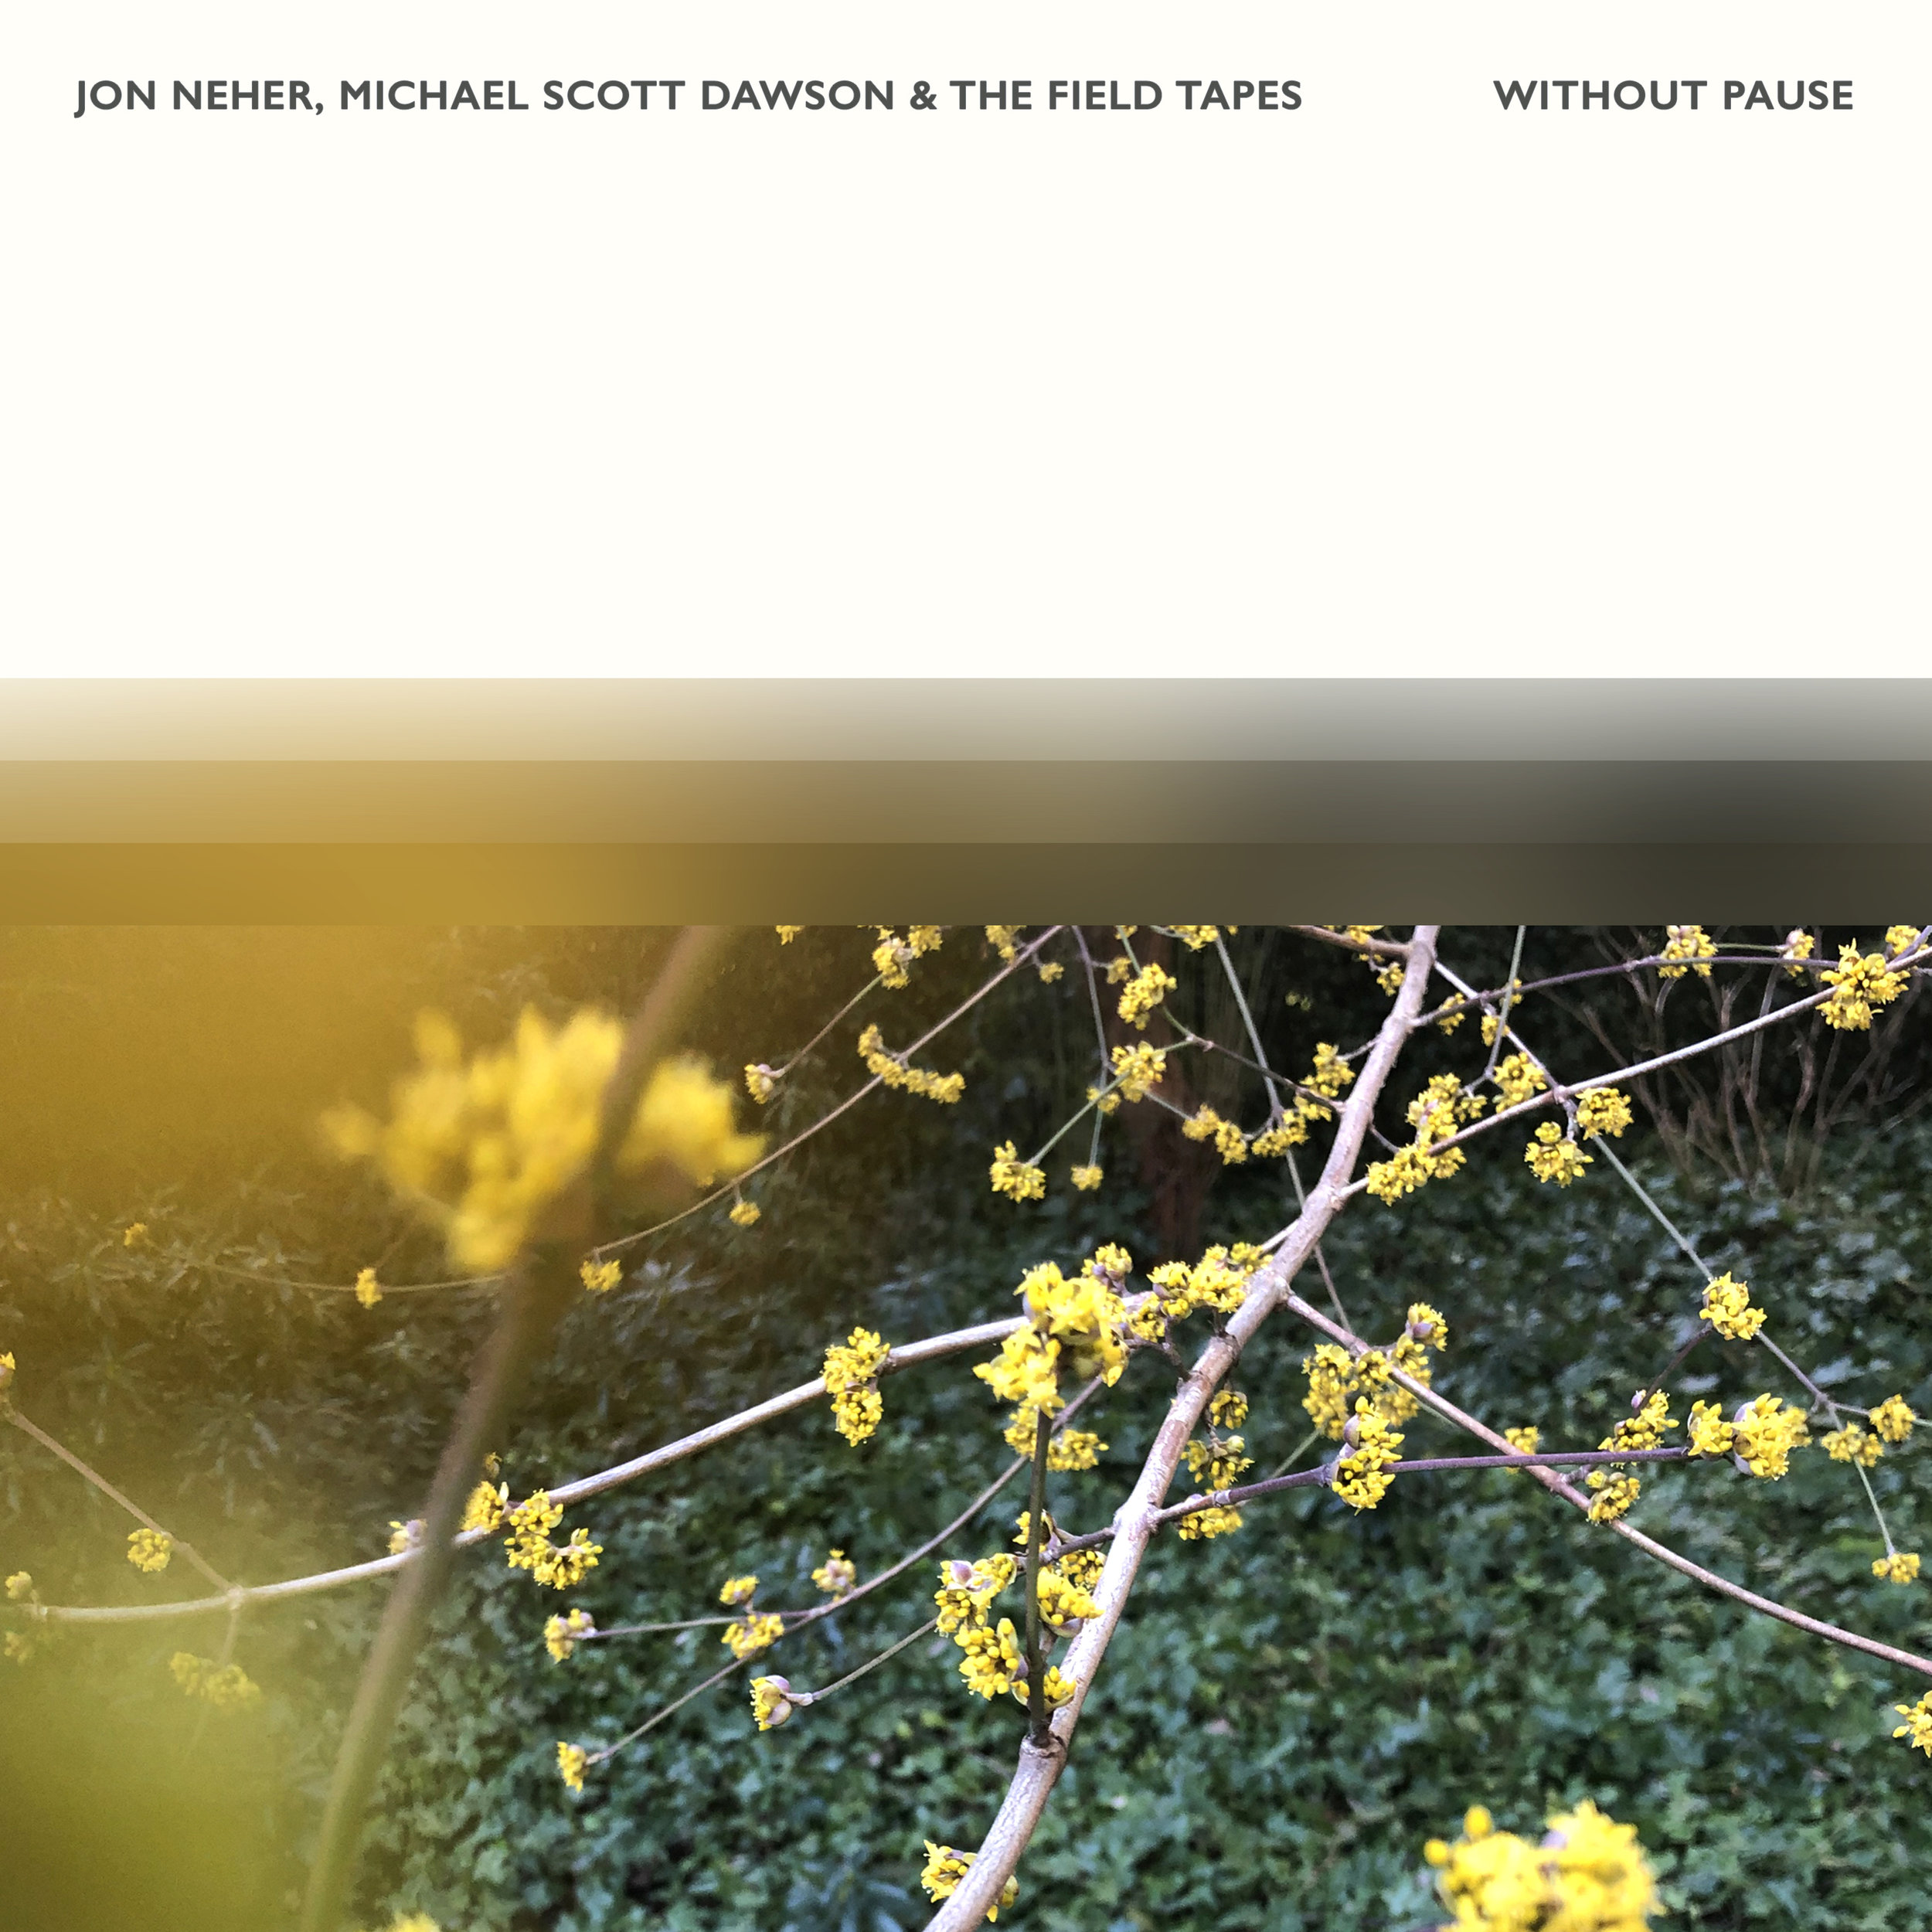 Jon Neher, Michael Scott Dawson & The Field Tapes - Without Pause